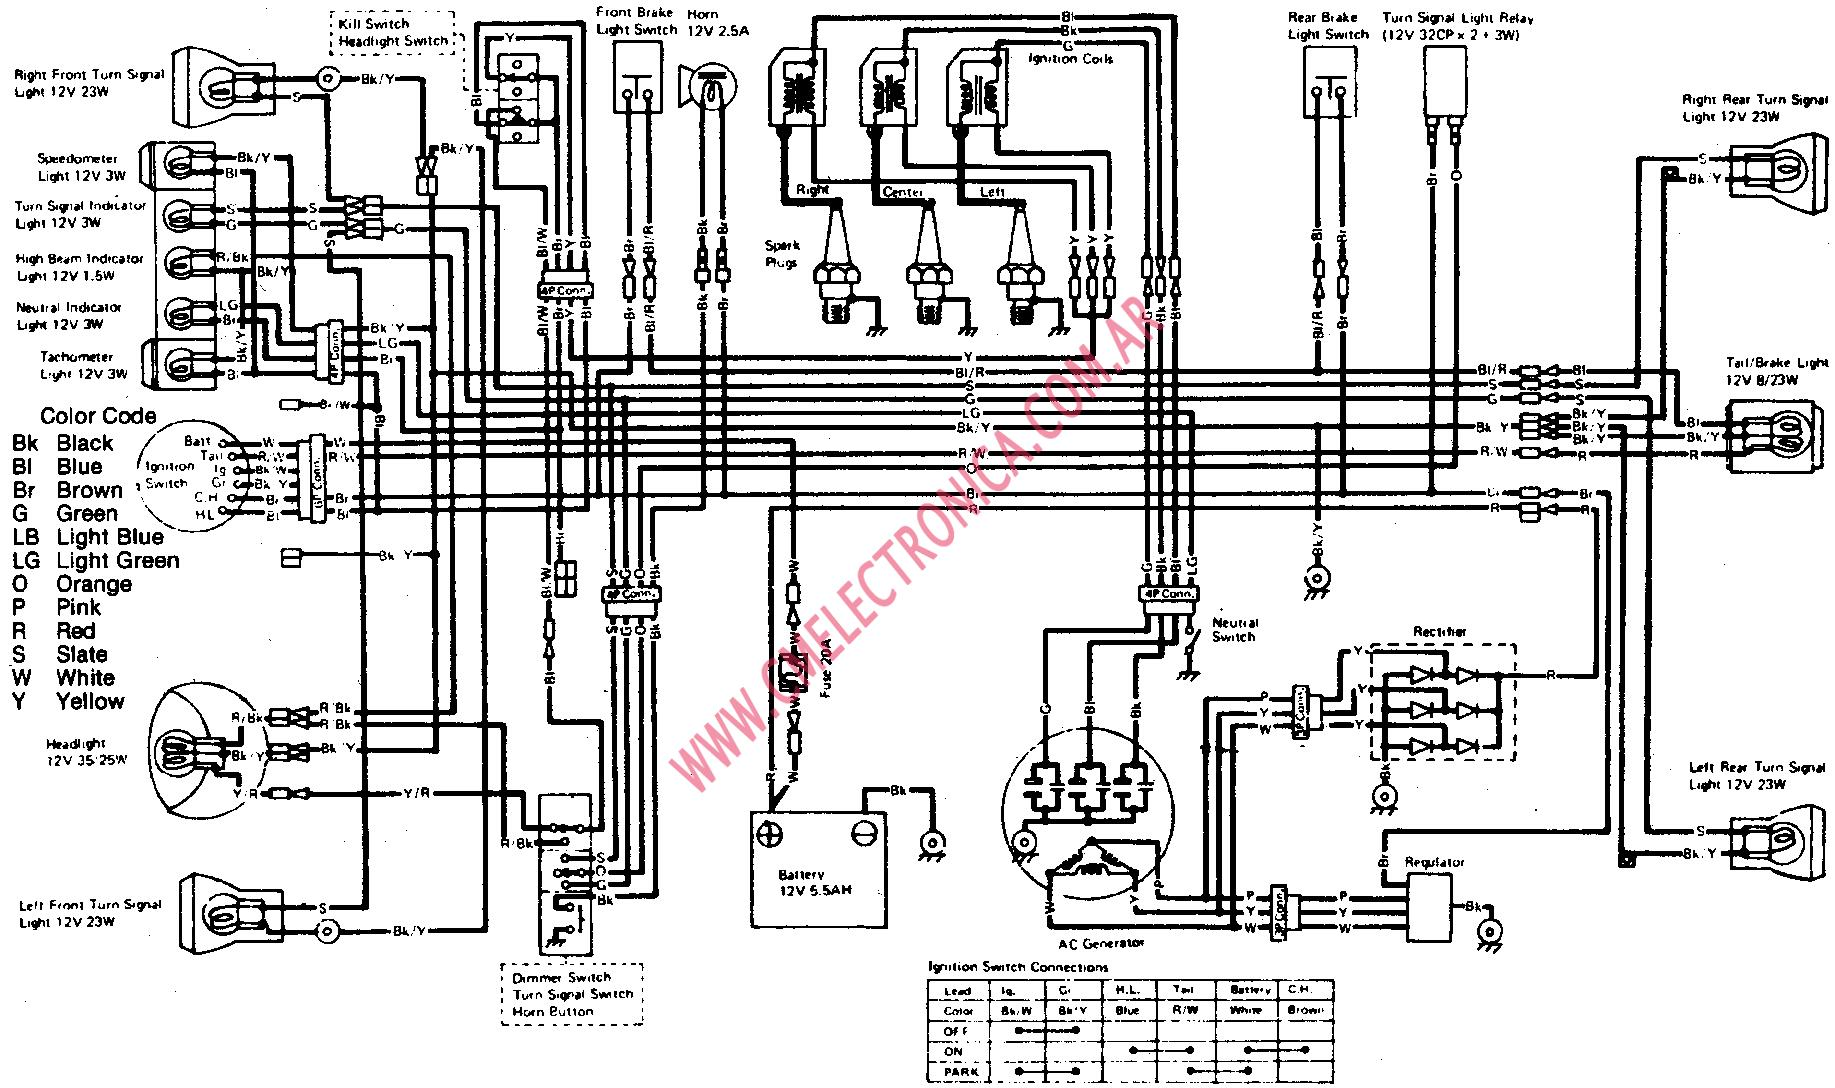 1988 Kawasaki Bayou 220 Wiring Diagram - wiring diagram subject-multi -  subject-multi.pennyapp.it | Bayou 220 Electrical Wiring Diagram |  | PennyApp